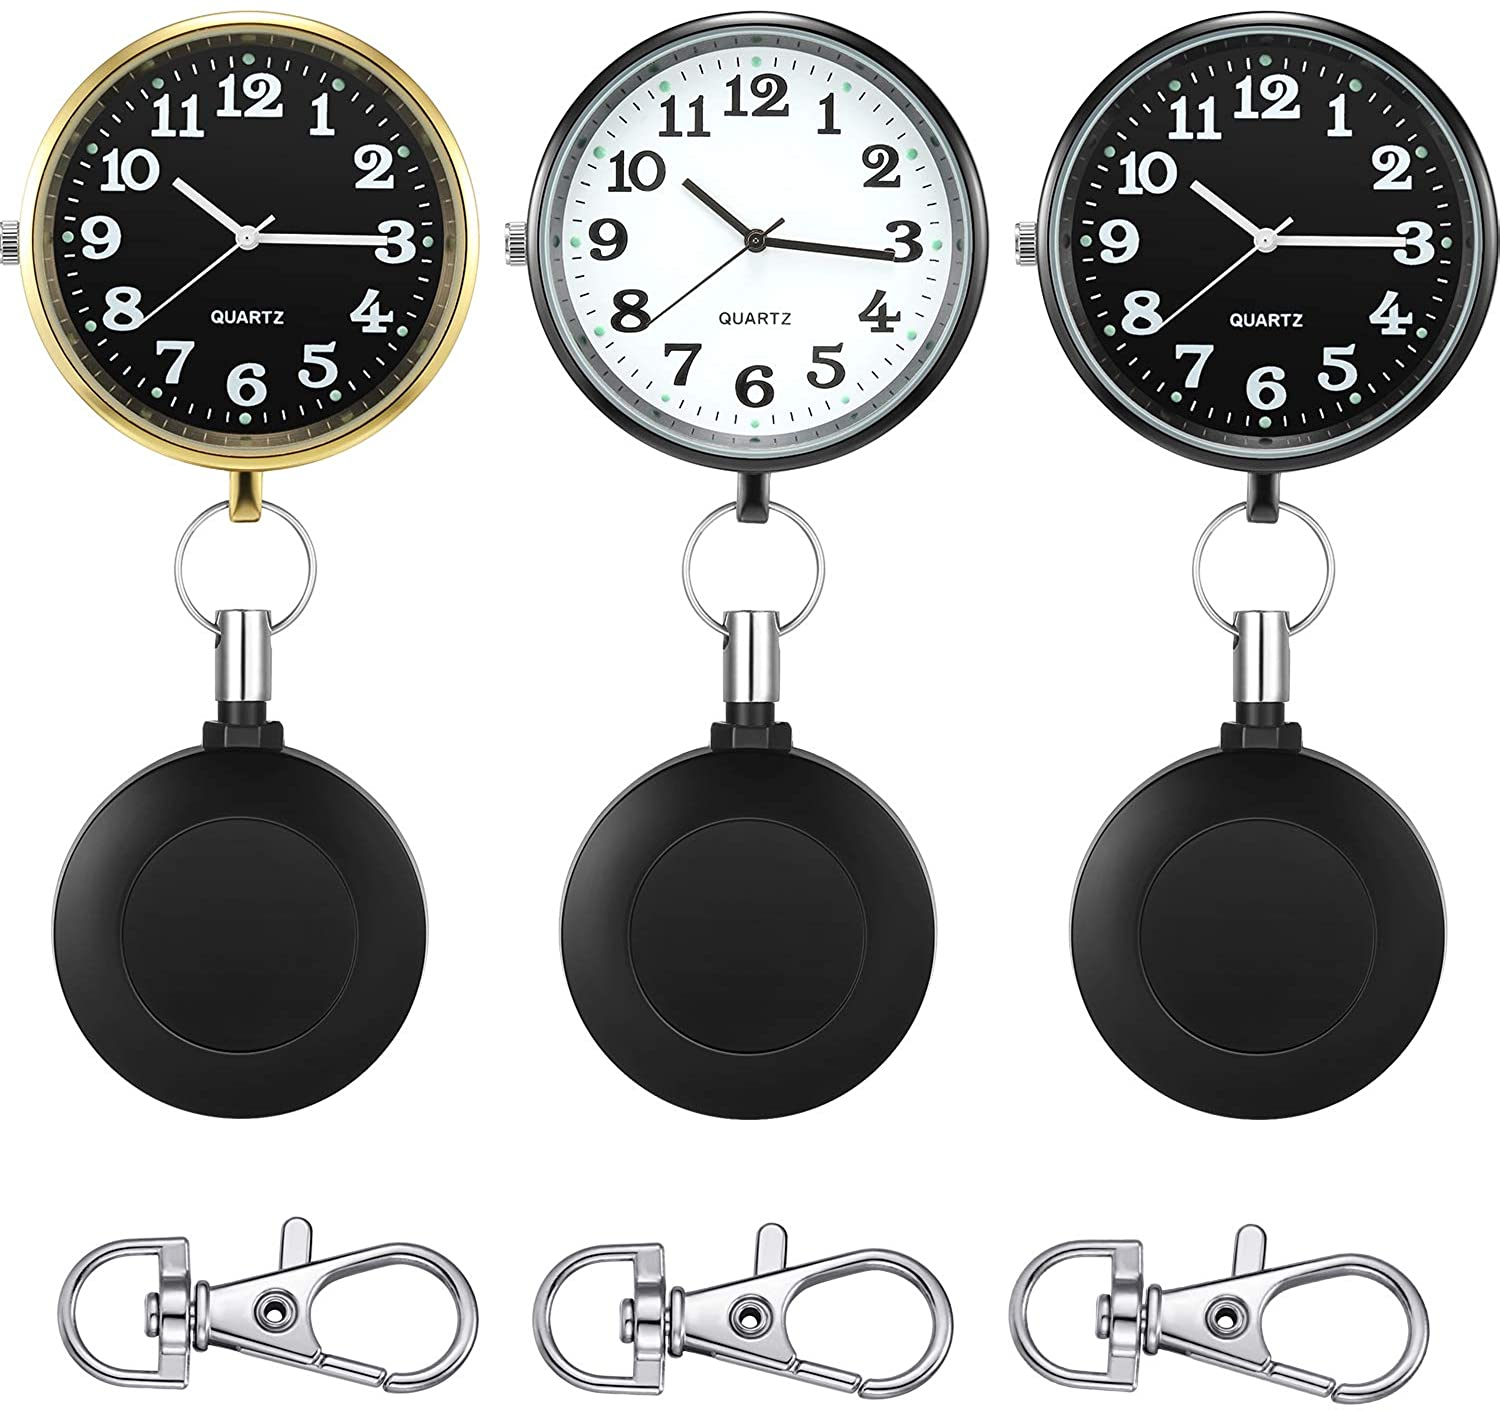 3 Pieces Nurse Watches Nursing Watch for Women and Men, Fob Nurse Watch with Second Hand Clip-on Retractable Pocket Watch for Nurses and Doctors